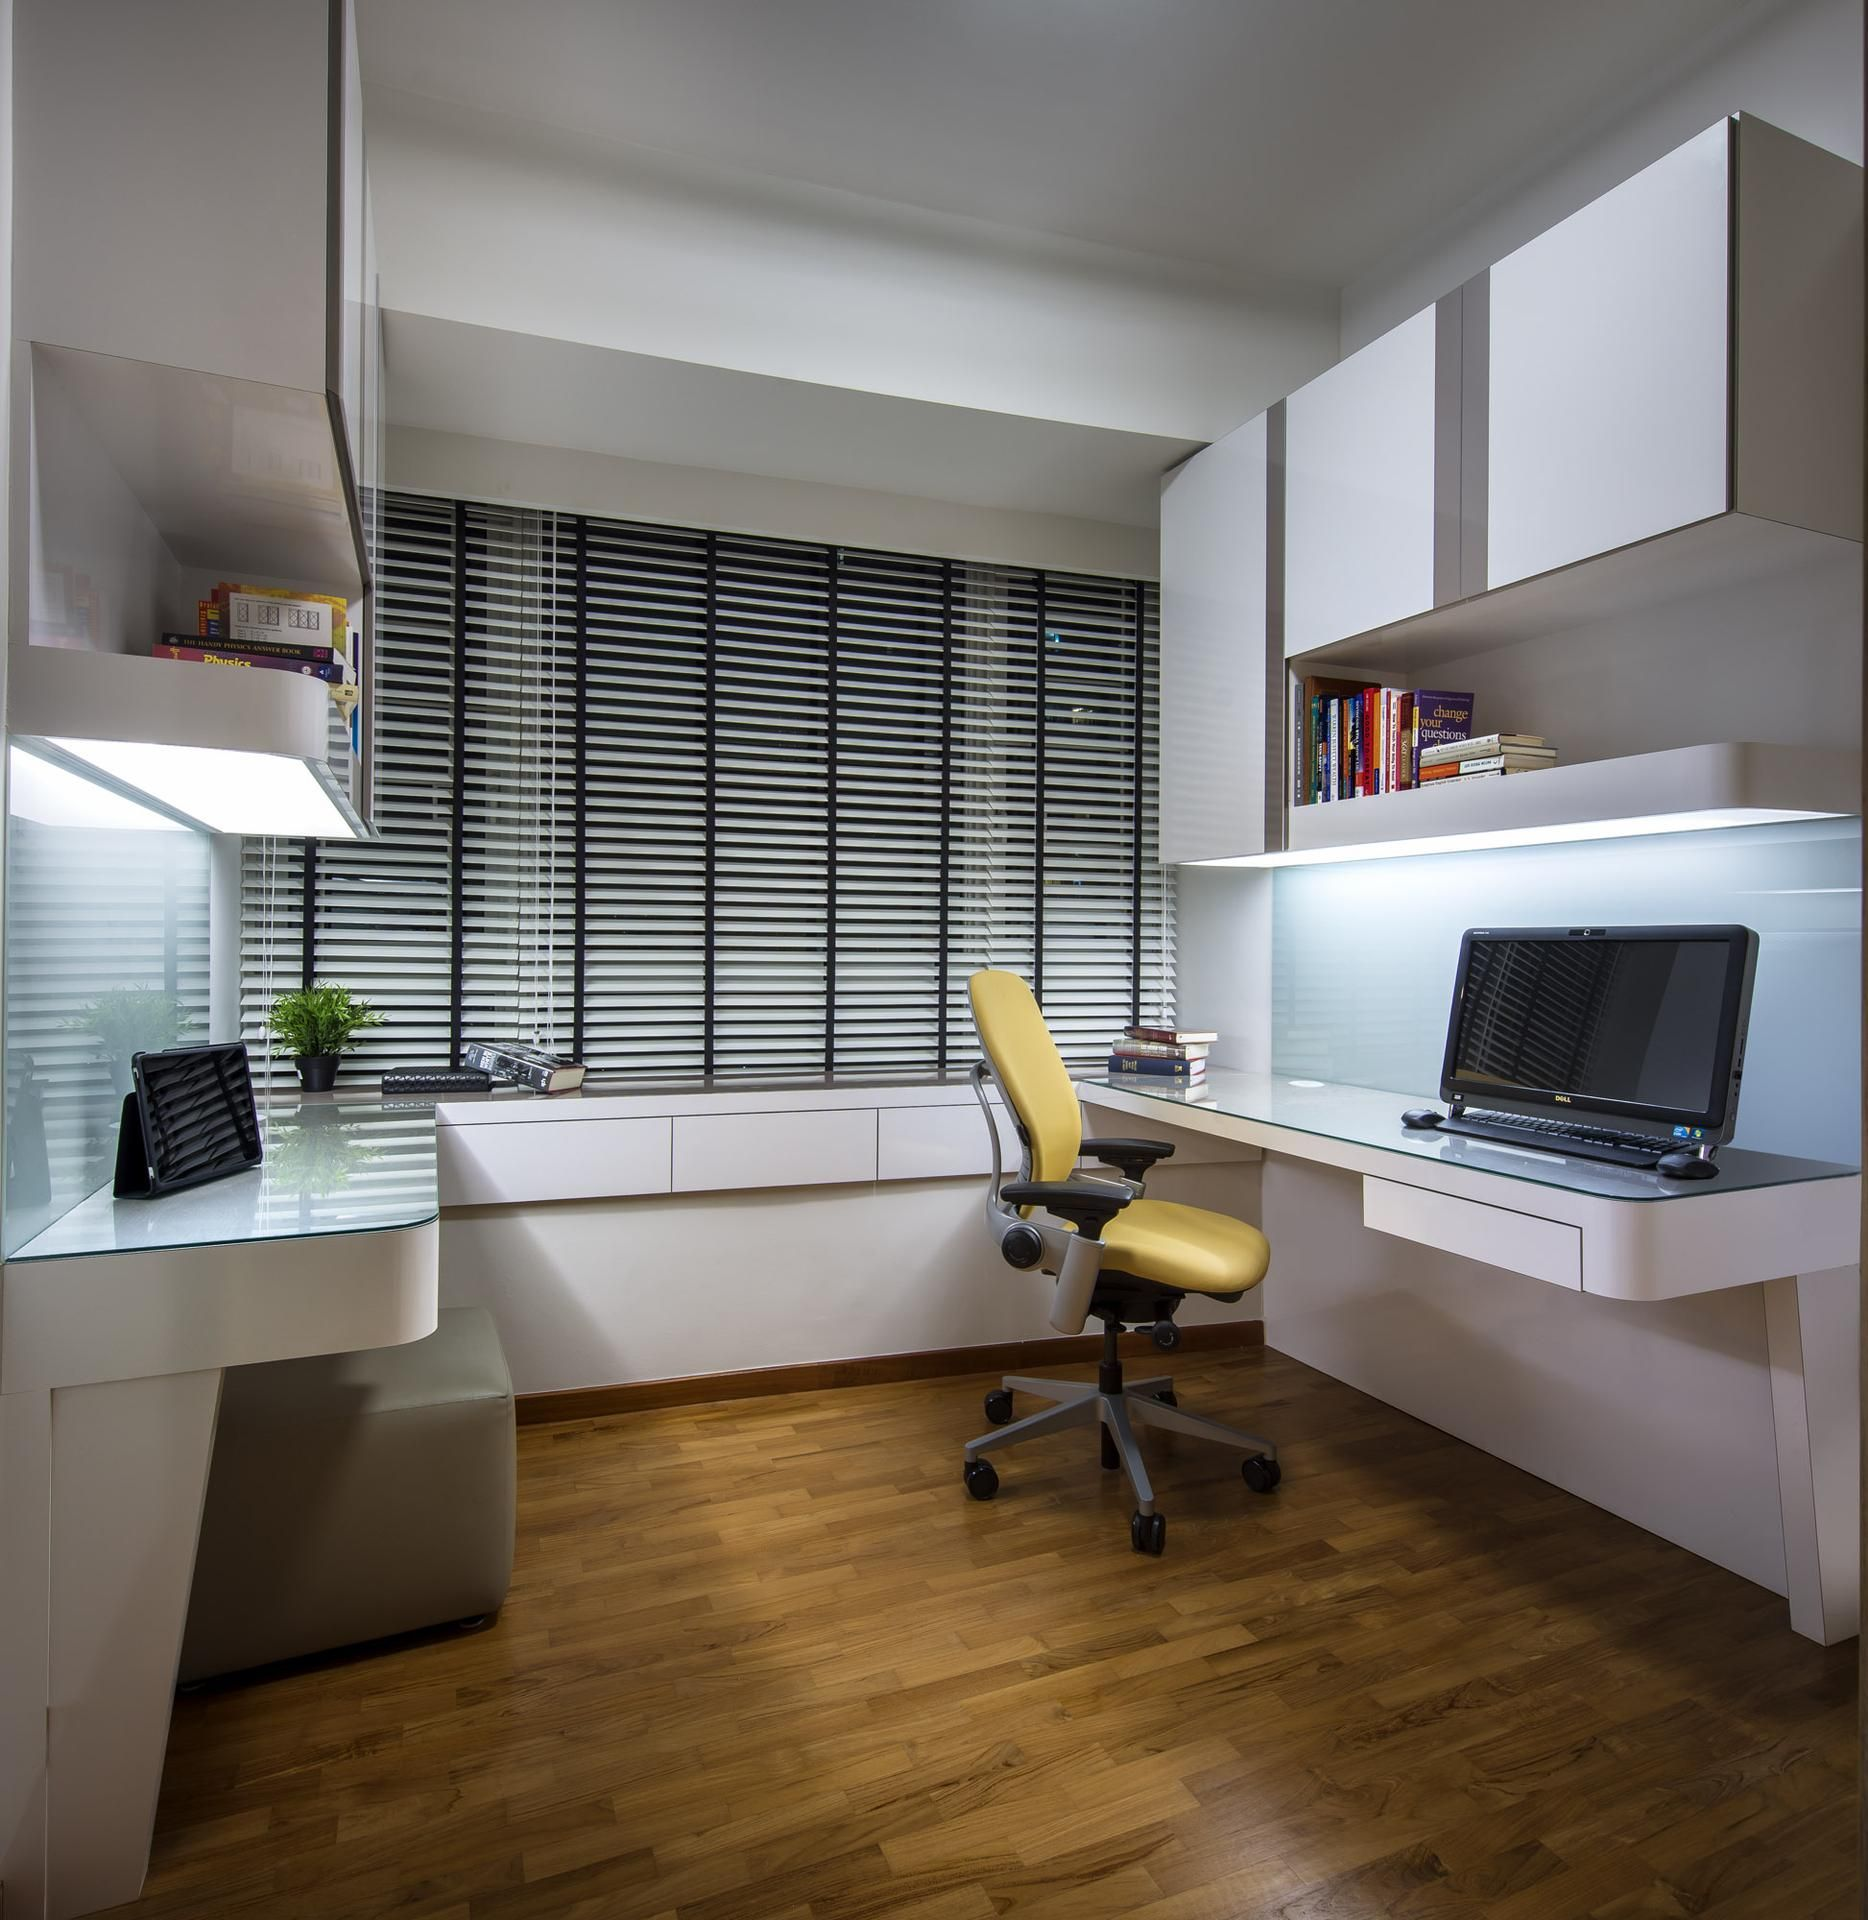 Clover by the park qanvast home design renovation remodelling furnishing ideas